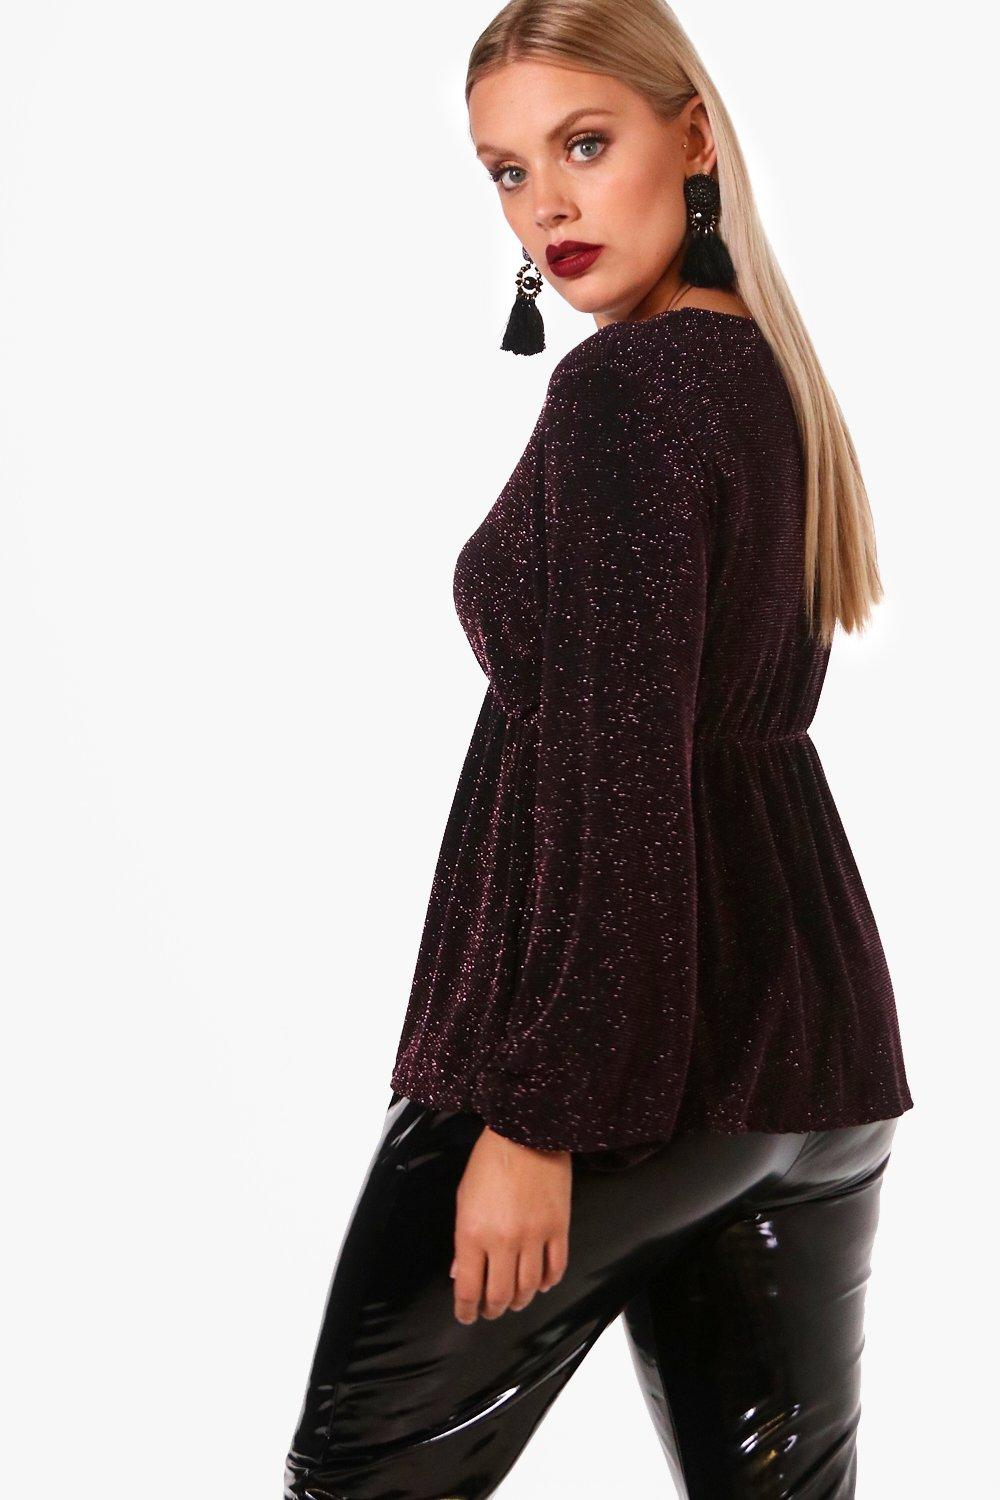 Plus Scarlett pink Top Plunge Long Metallic Sleeve OZxAO